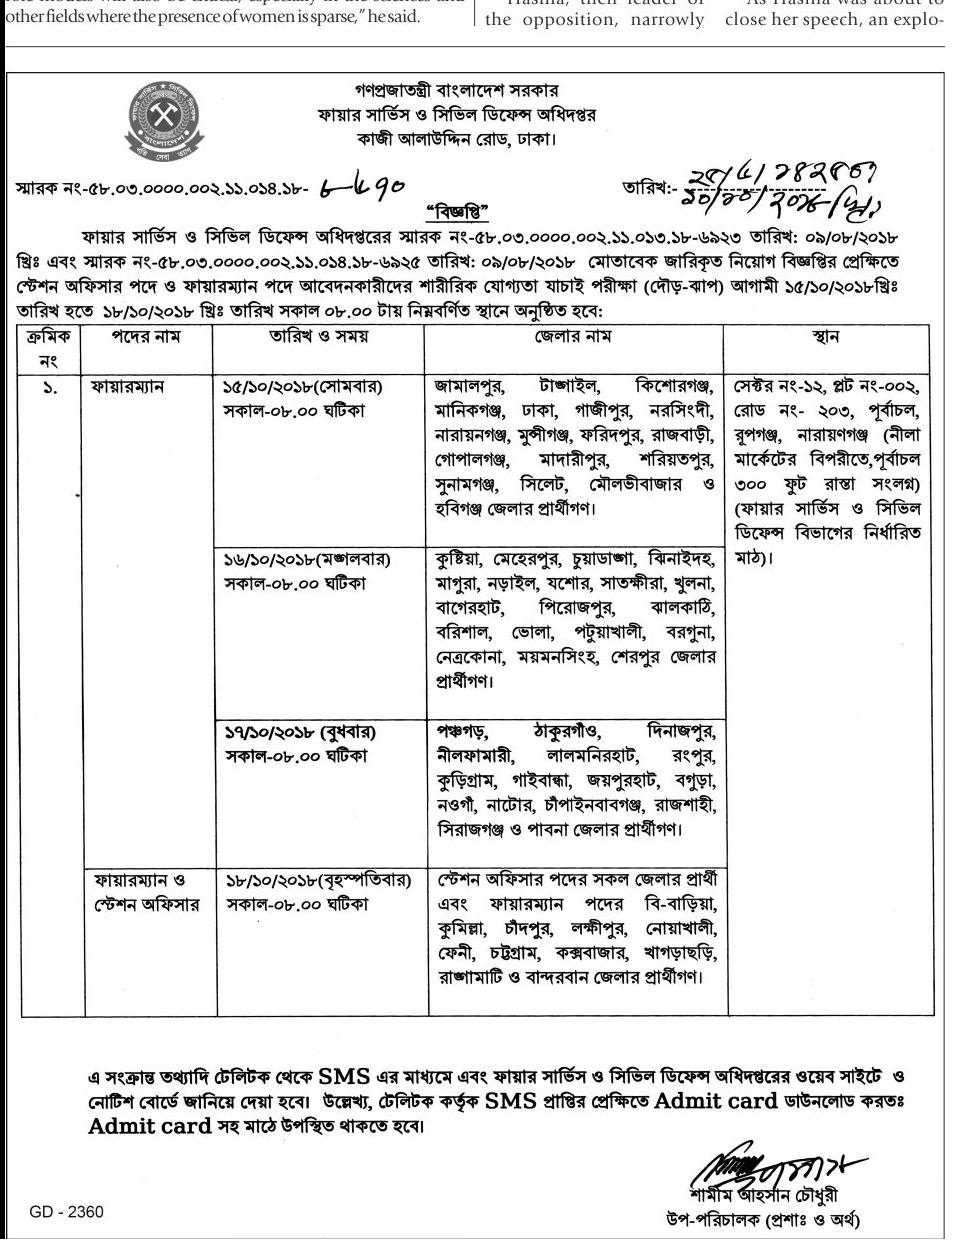 Bangladesh Fire Service & Civil Defence Exam Notice 2018